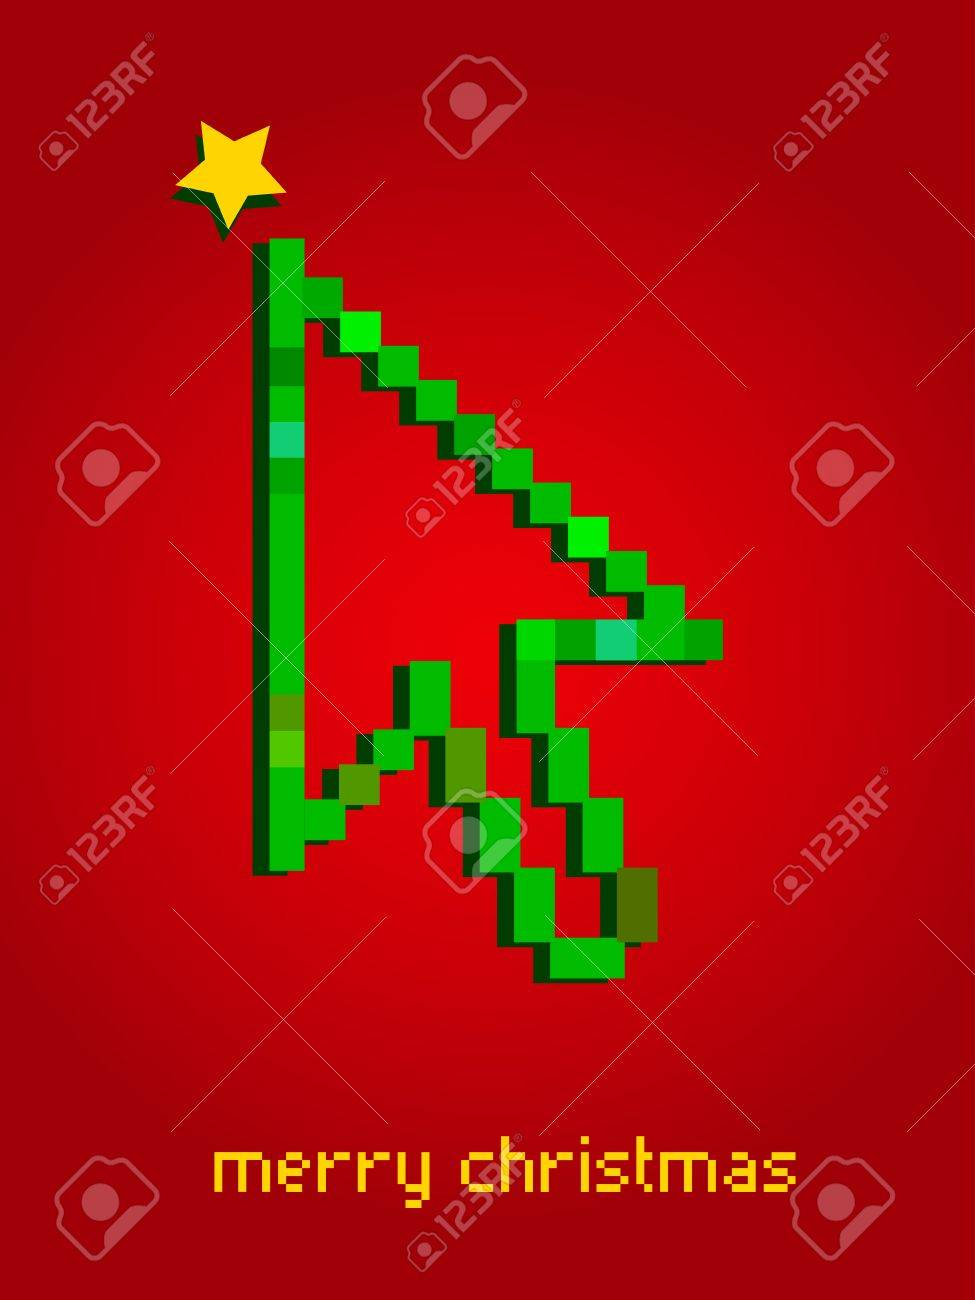 32,649 Computer Cursor Stock Vector Illustration And Royalty Free ...